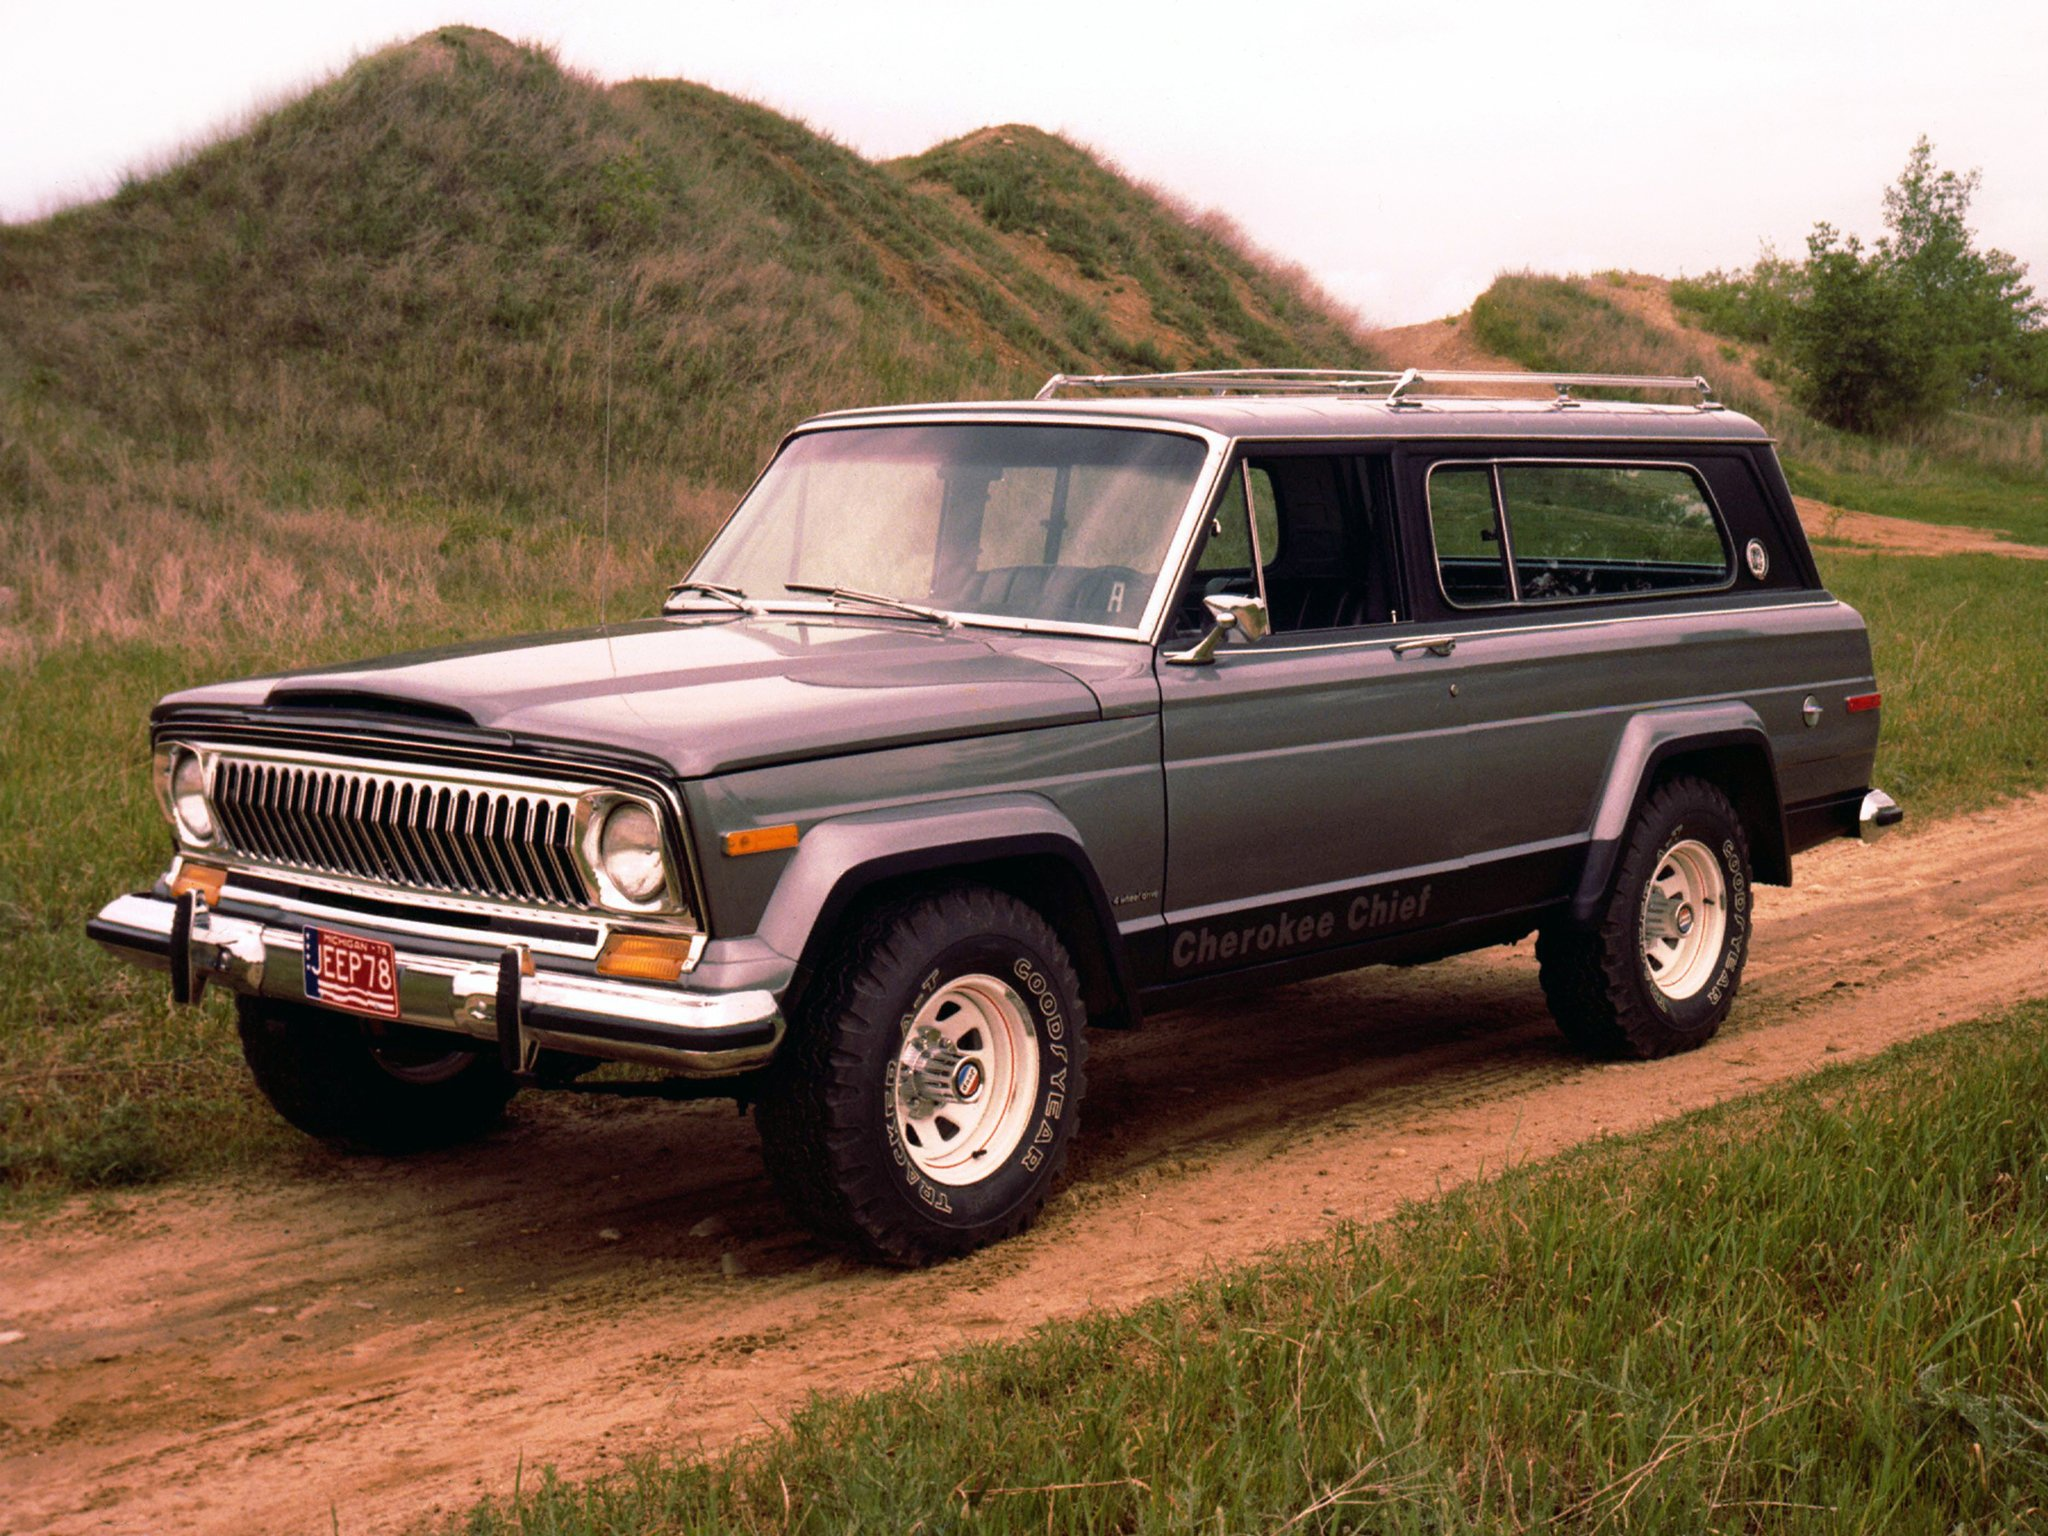 1976 78 jeep cherokee chief s j 4x4 suv stationwagon g for J and s motors